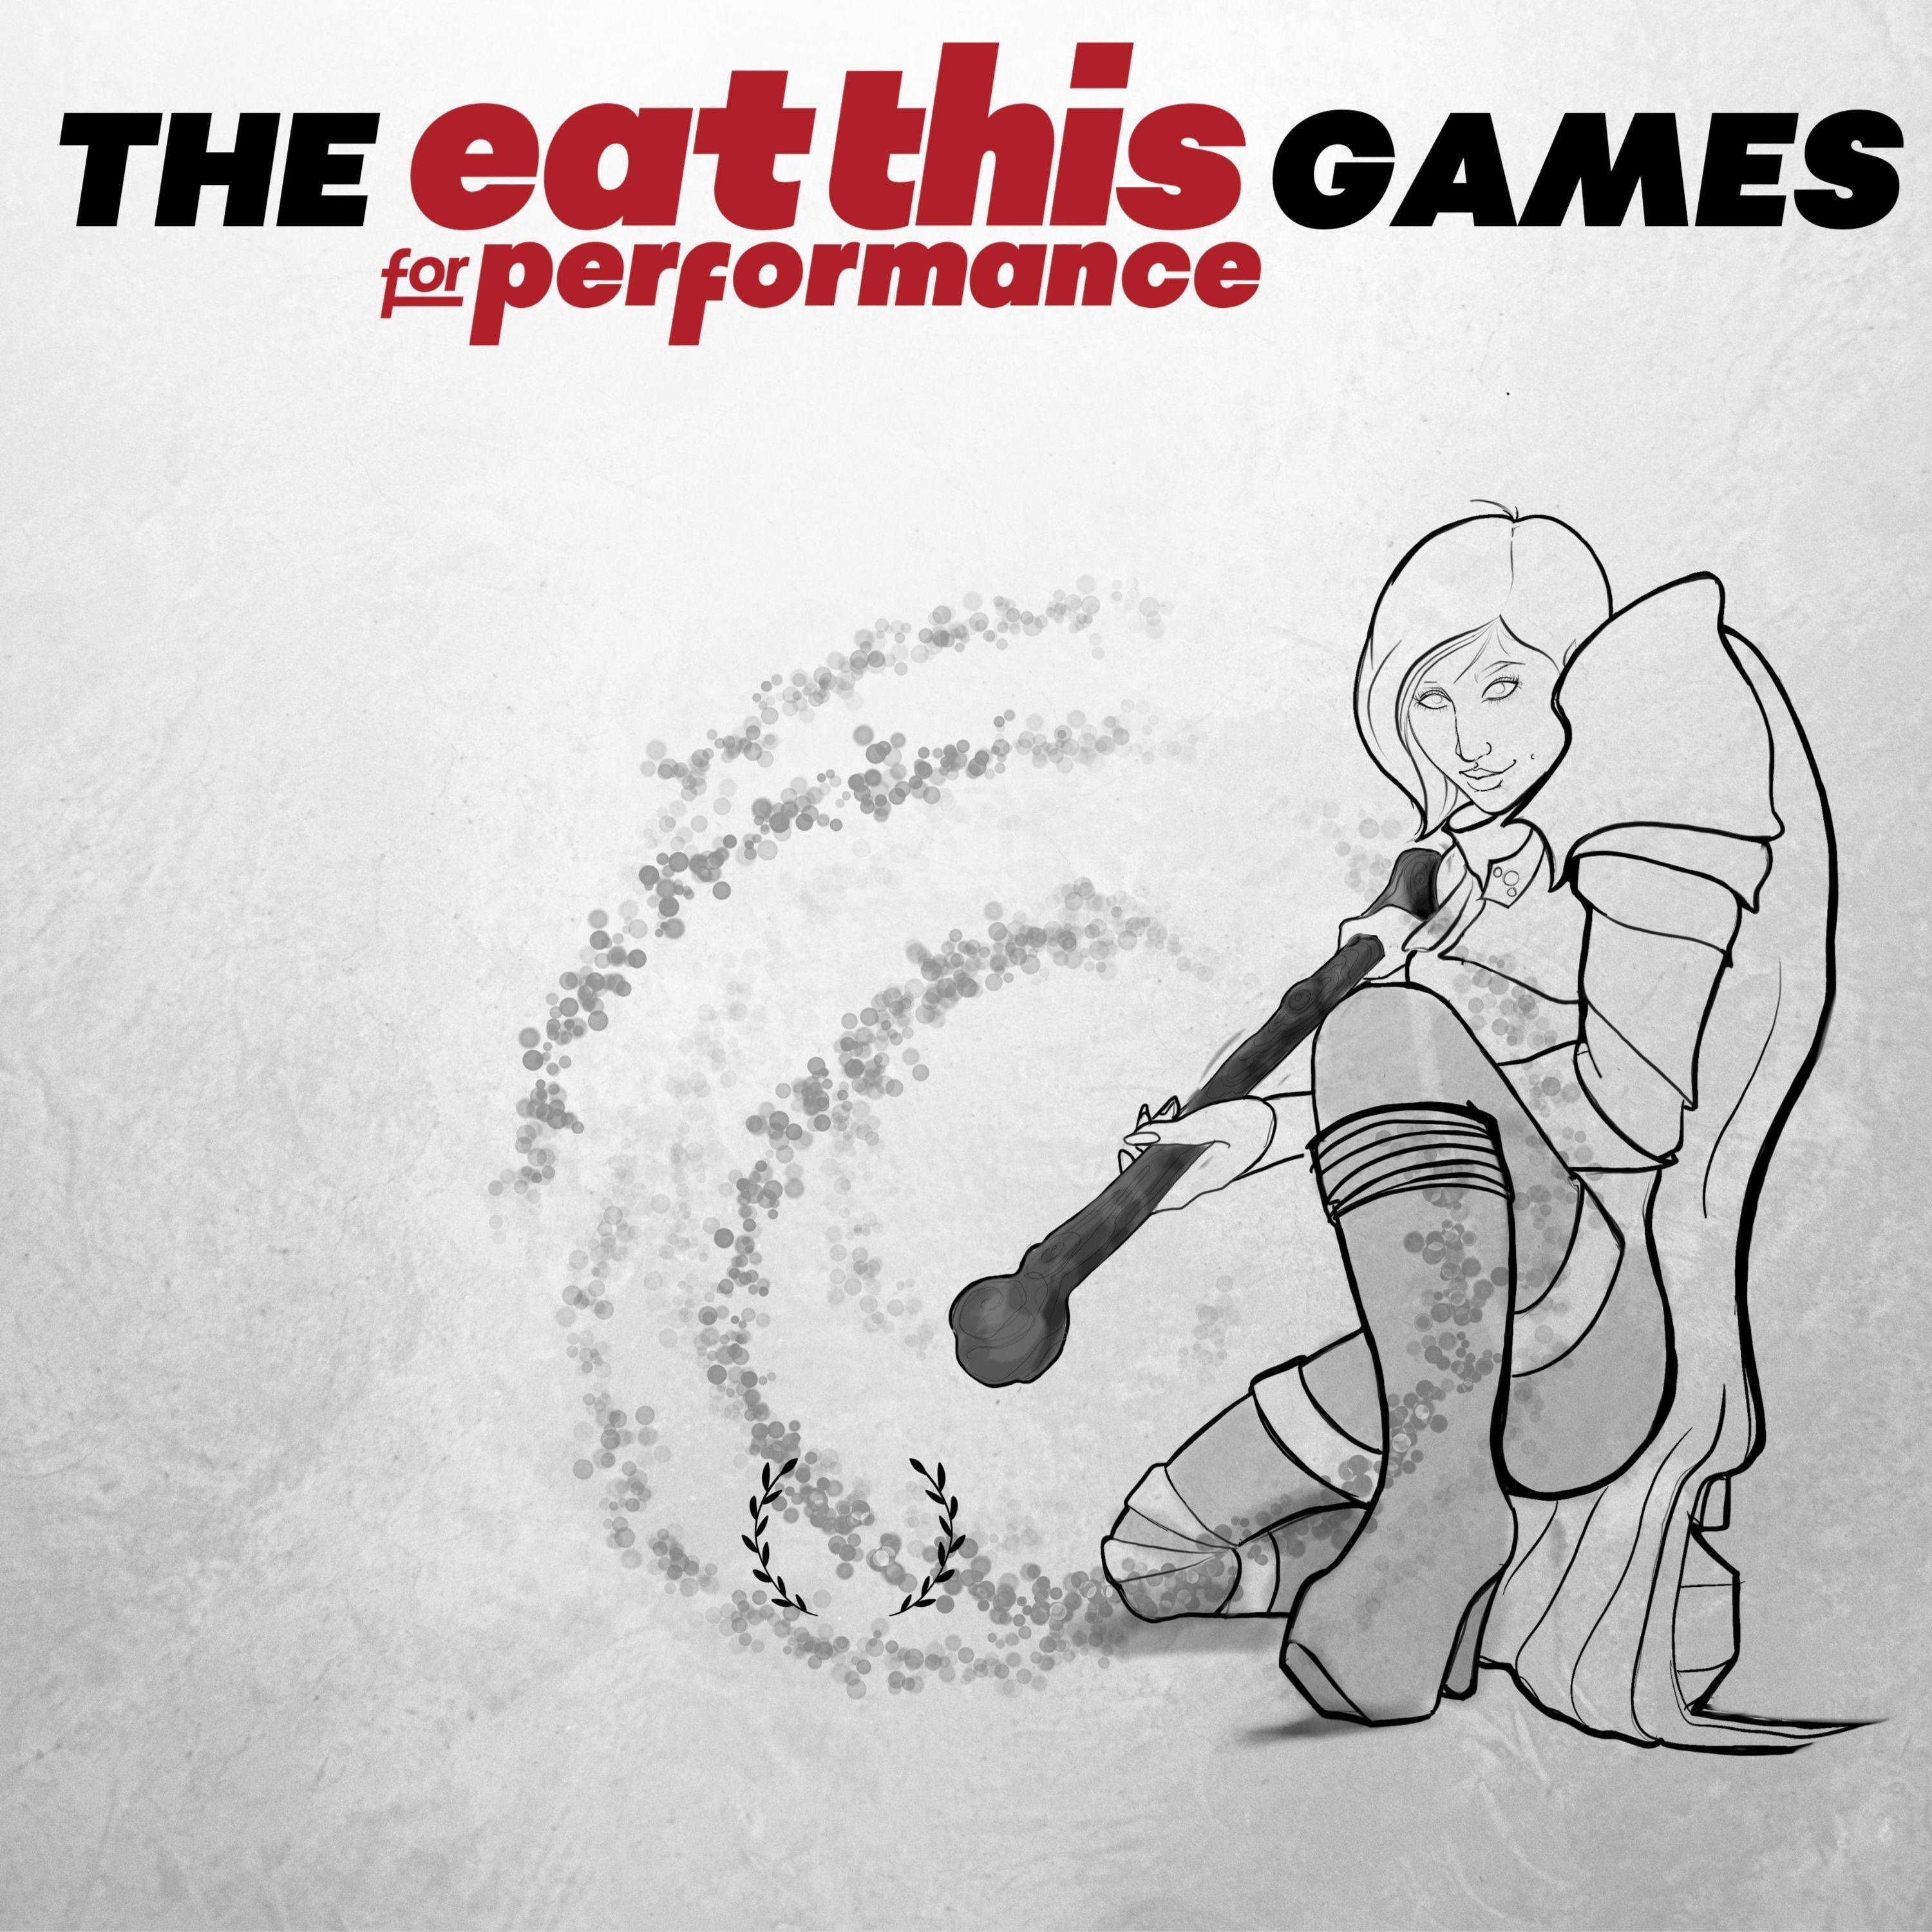 The 1 Game Every Athlete Needs to Play